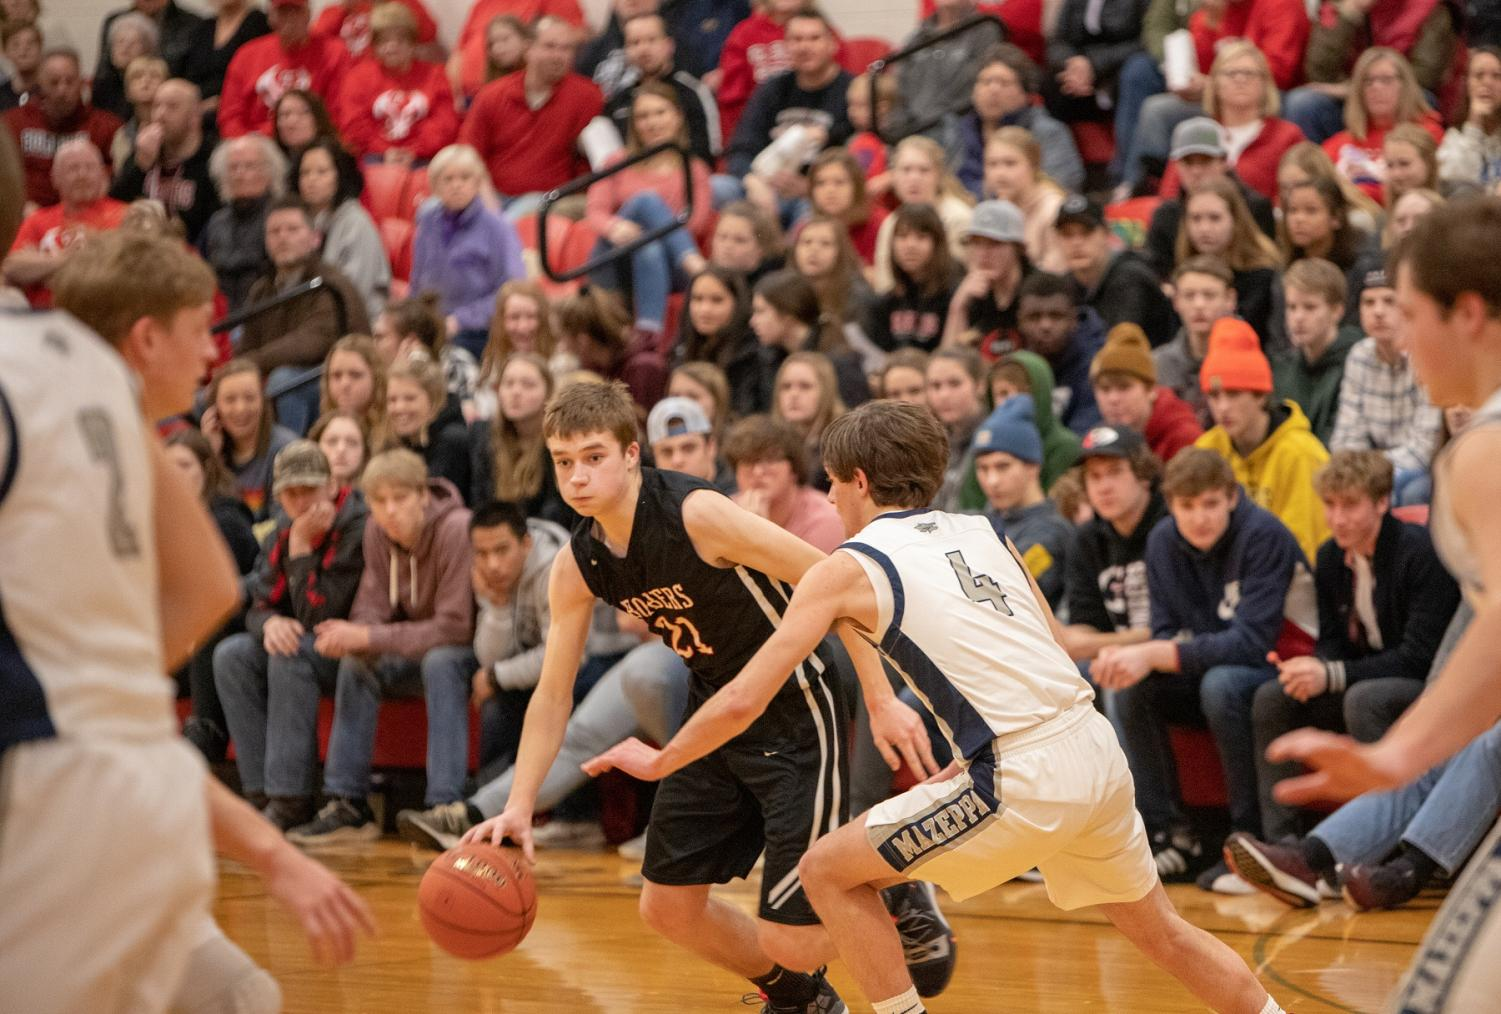 Senior, Luke Sjoquist dodges his opponent and drives to the basket for a layup.